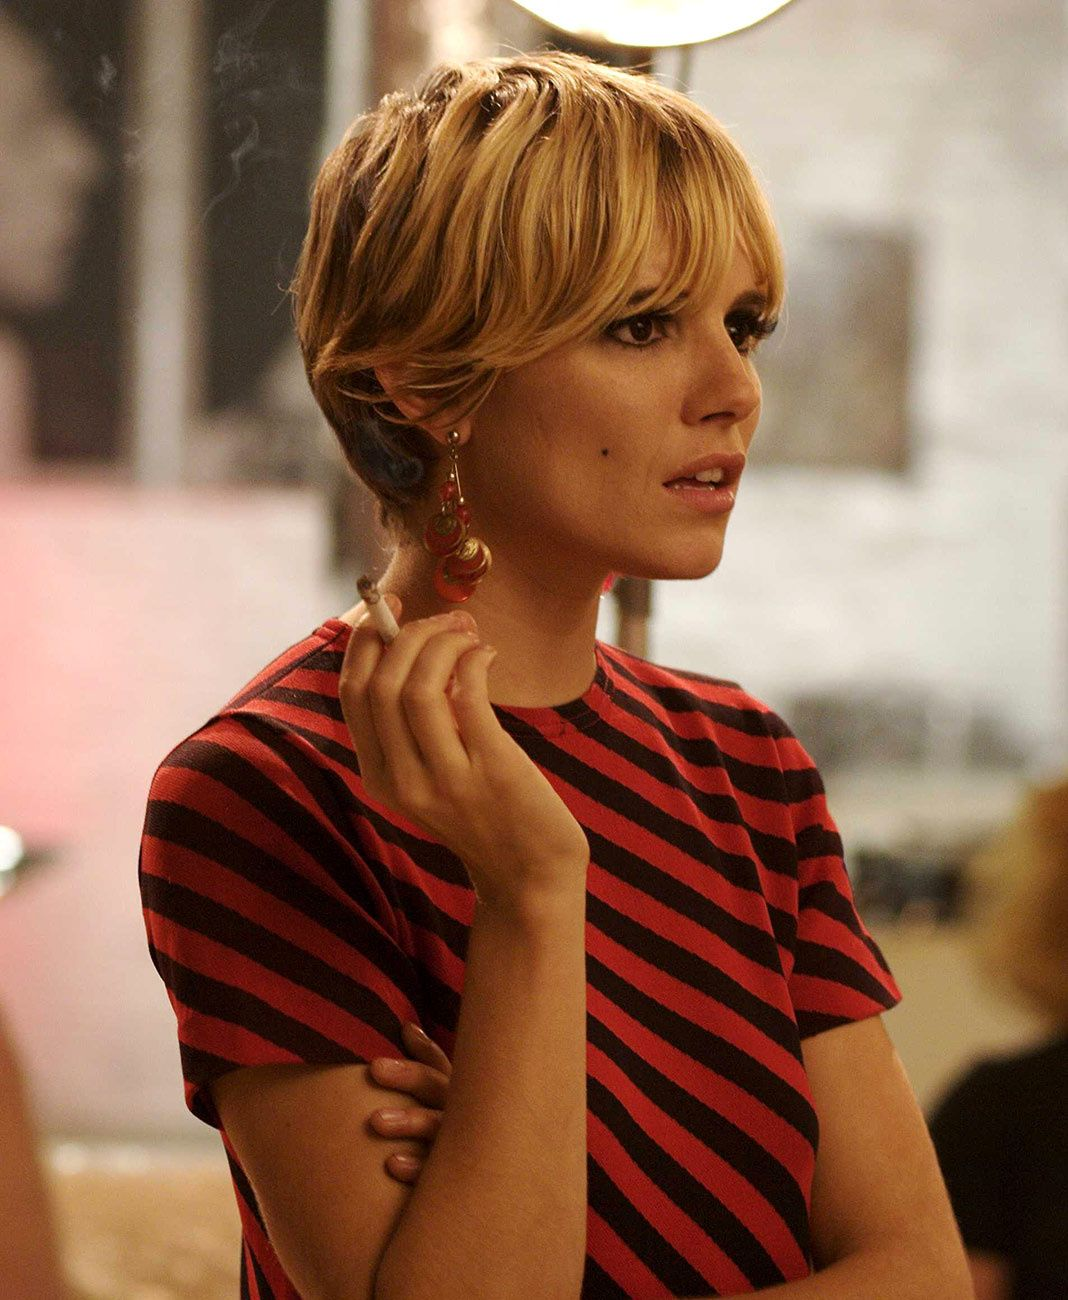 Sienna Miller Short Haircut Hair Color Ideas And Styles For 2018